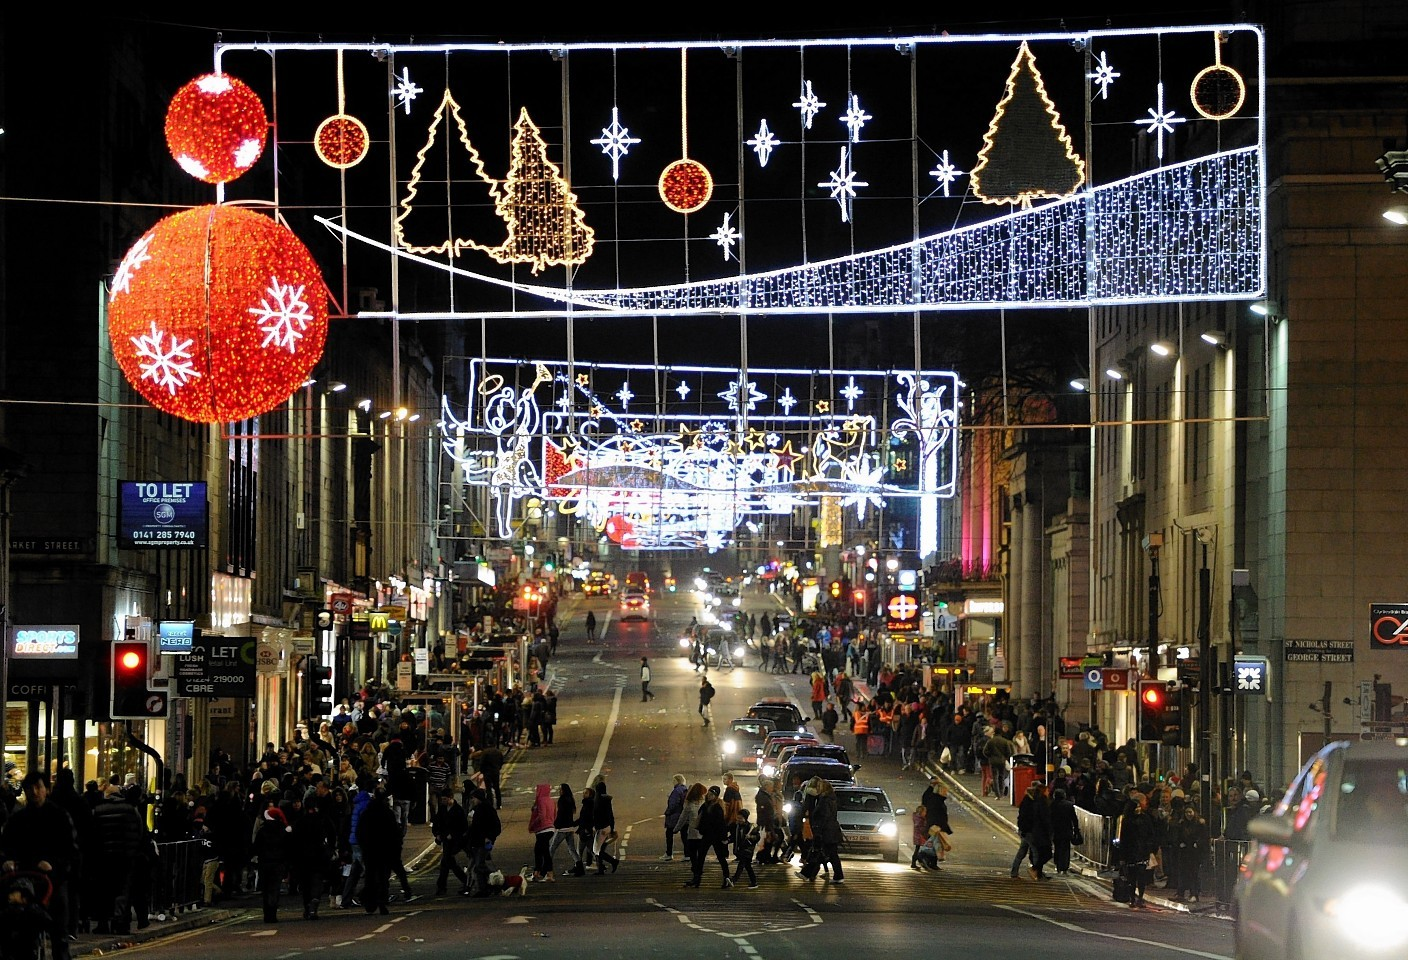 Aberdeen at Christmas